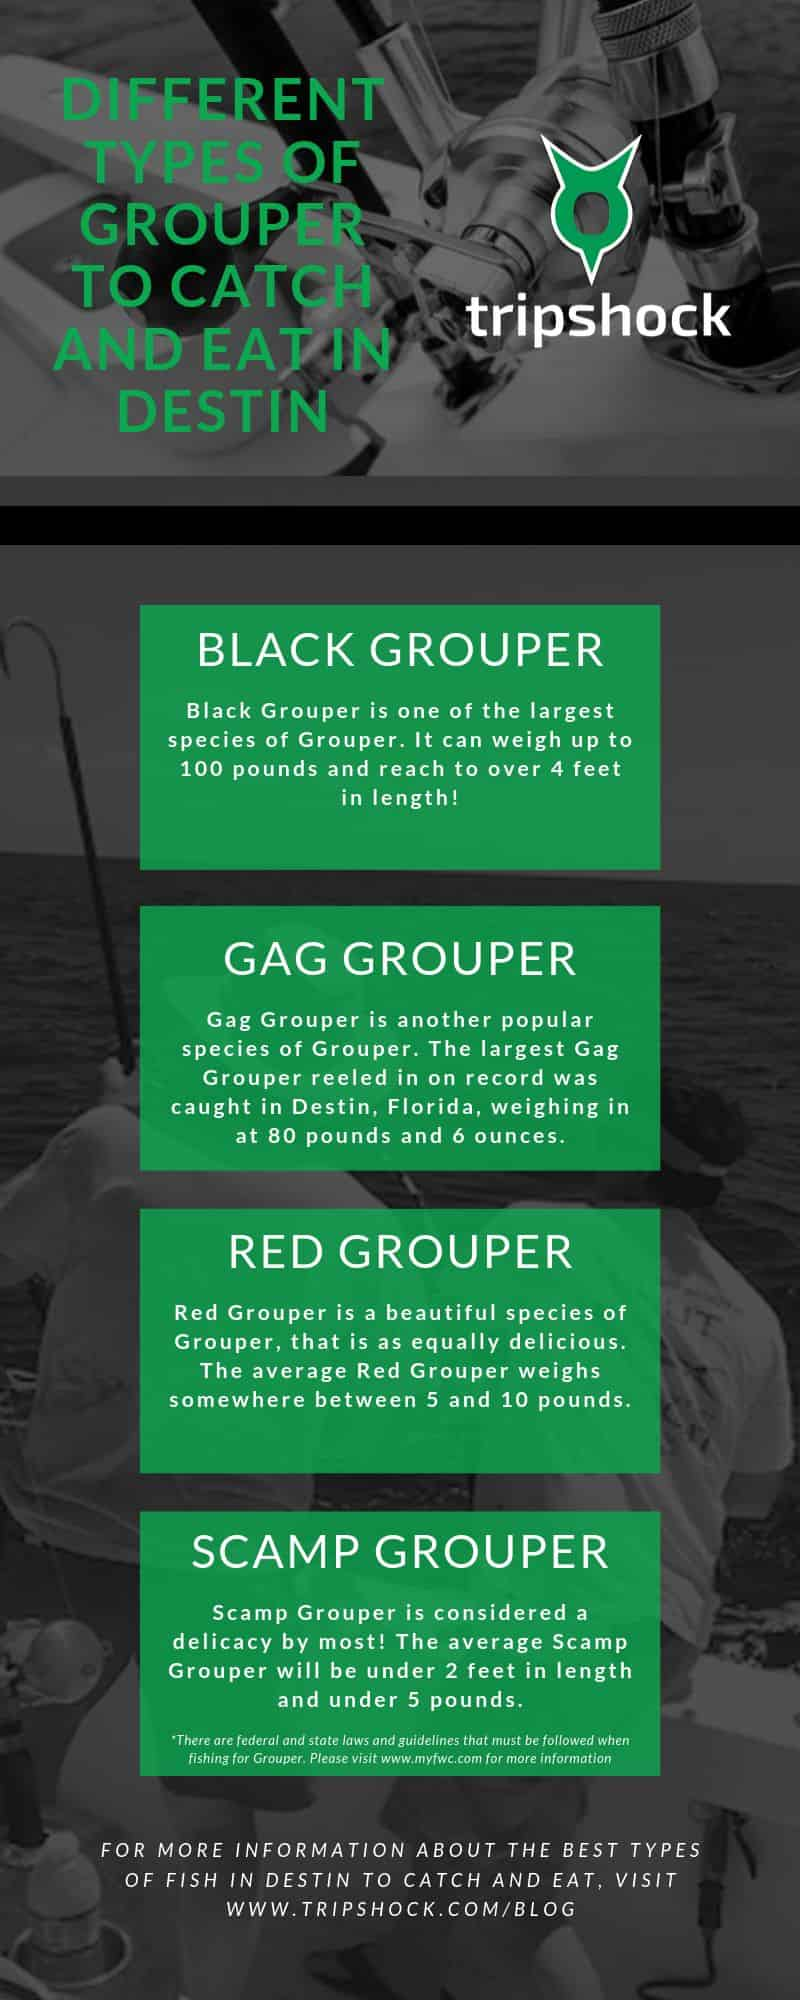 different types of grouper to catch and eat in destin